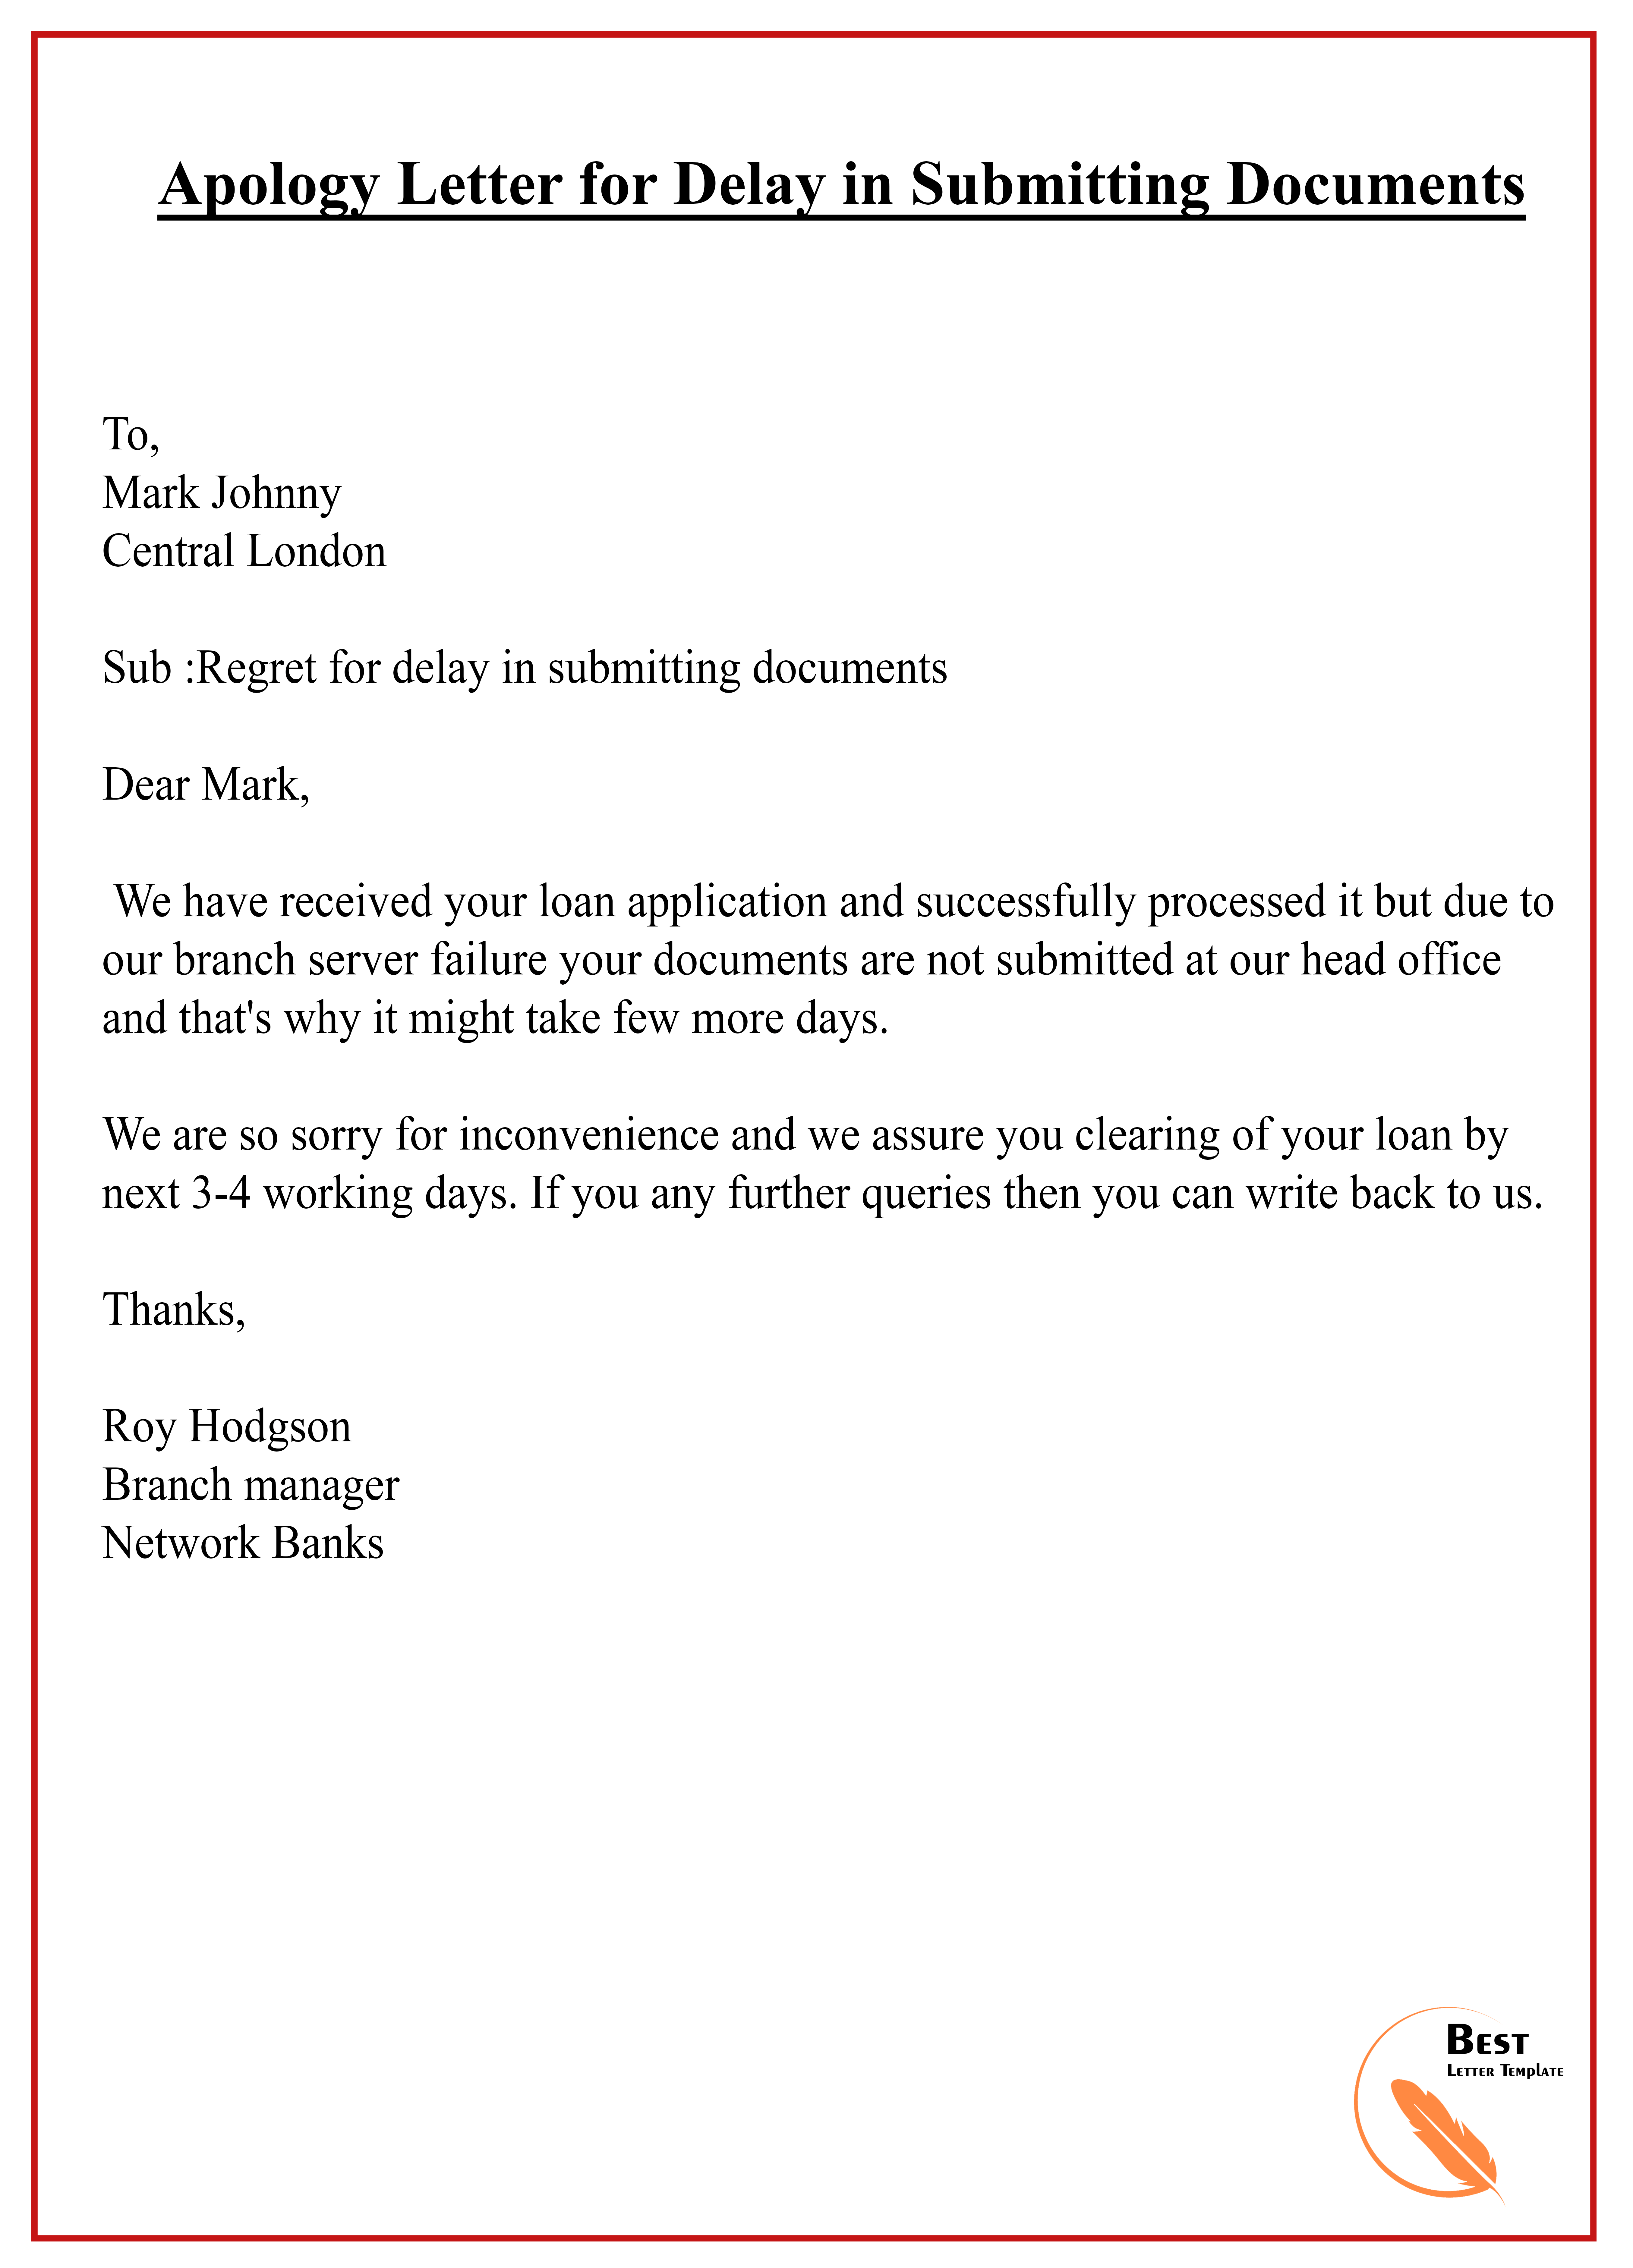 apology letter for delay in document